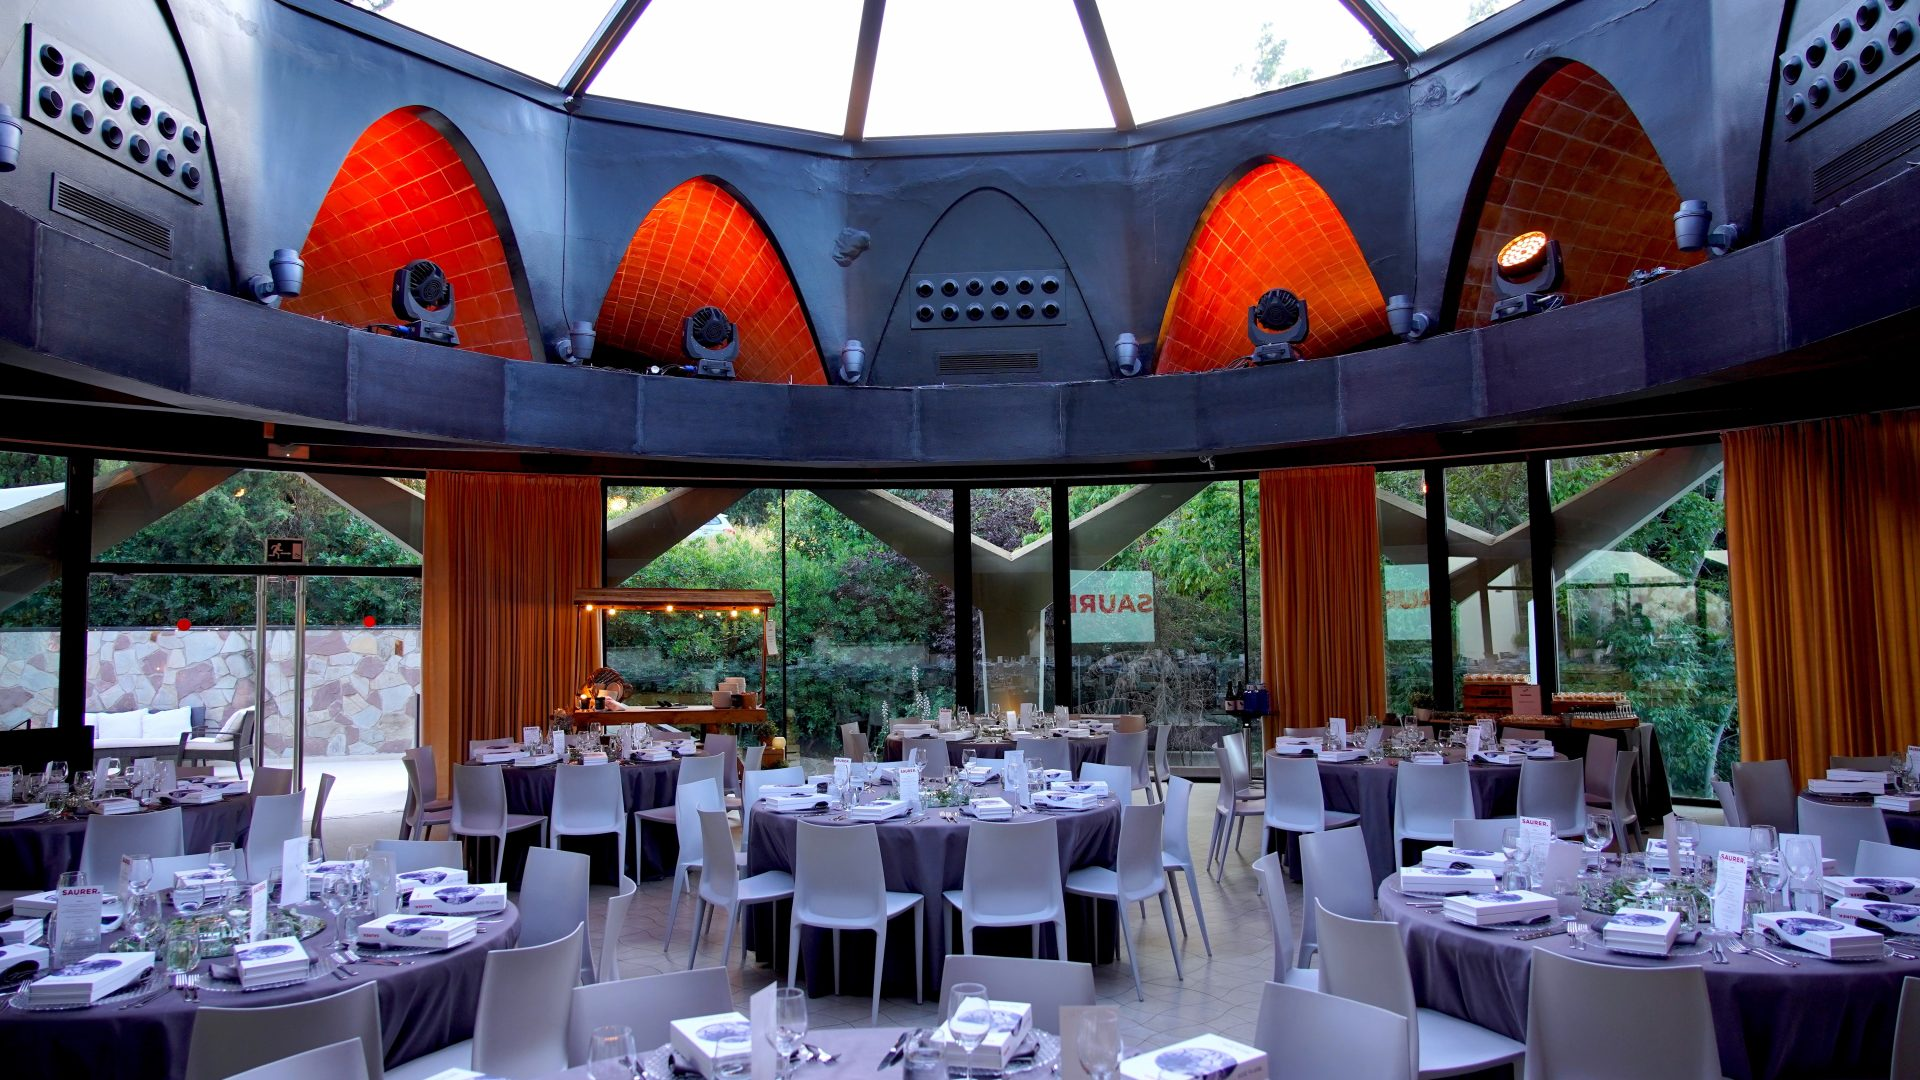 Dinner dressing at a Barcelona venue in Montjuic area